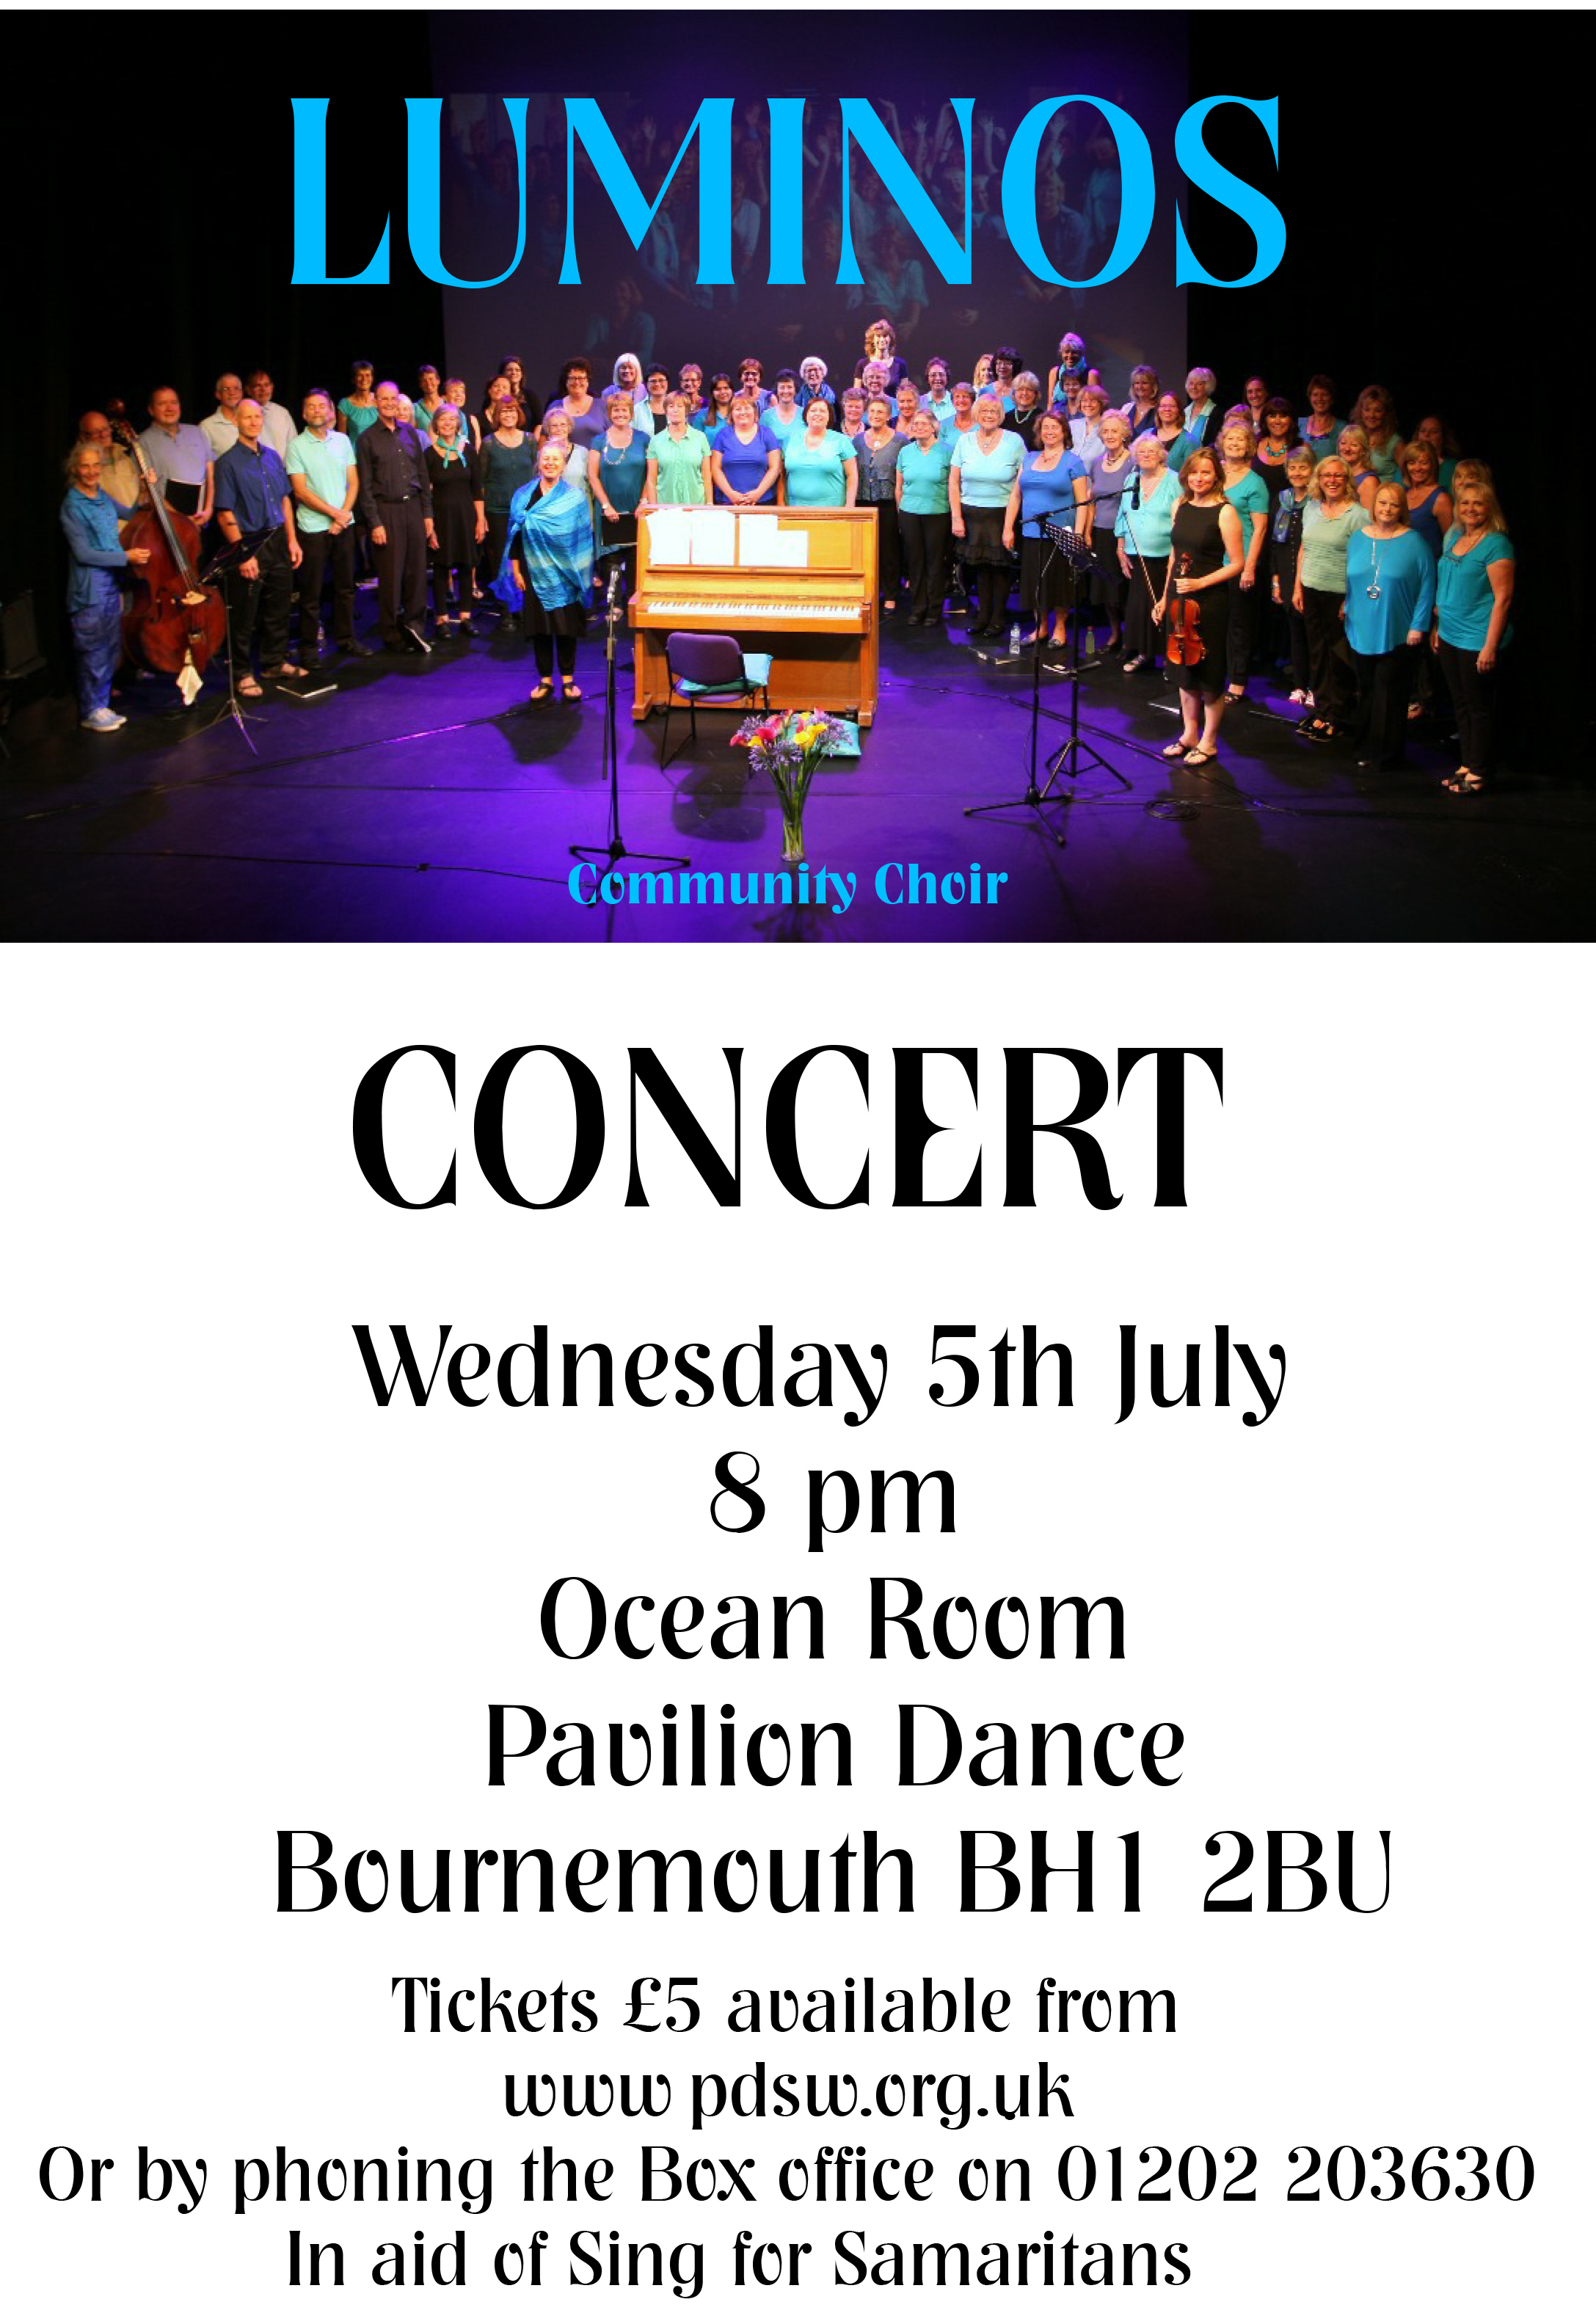 Luminos Community Choir Concert, supported by Lesley Shand